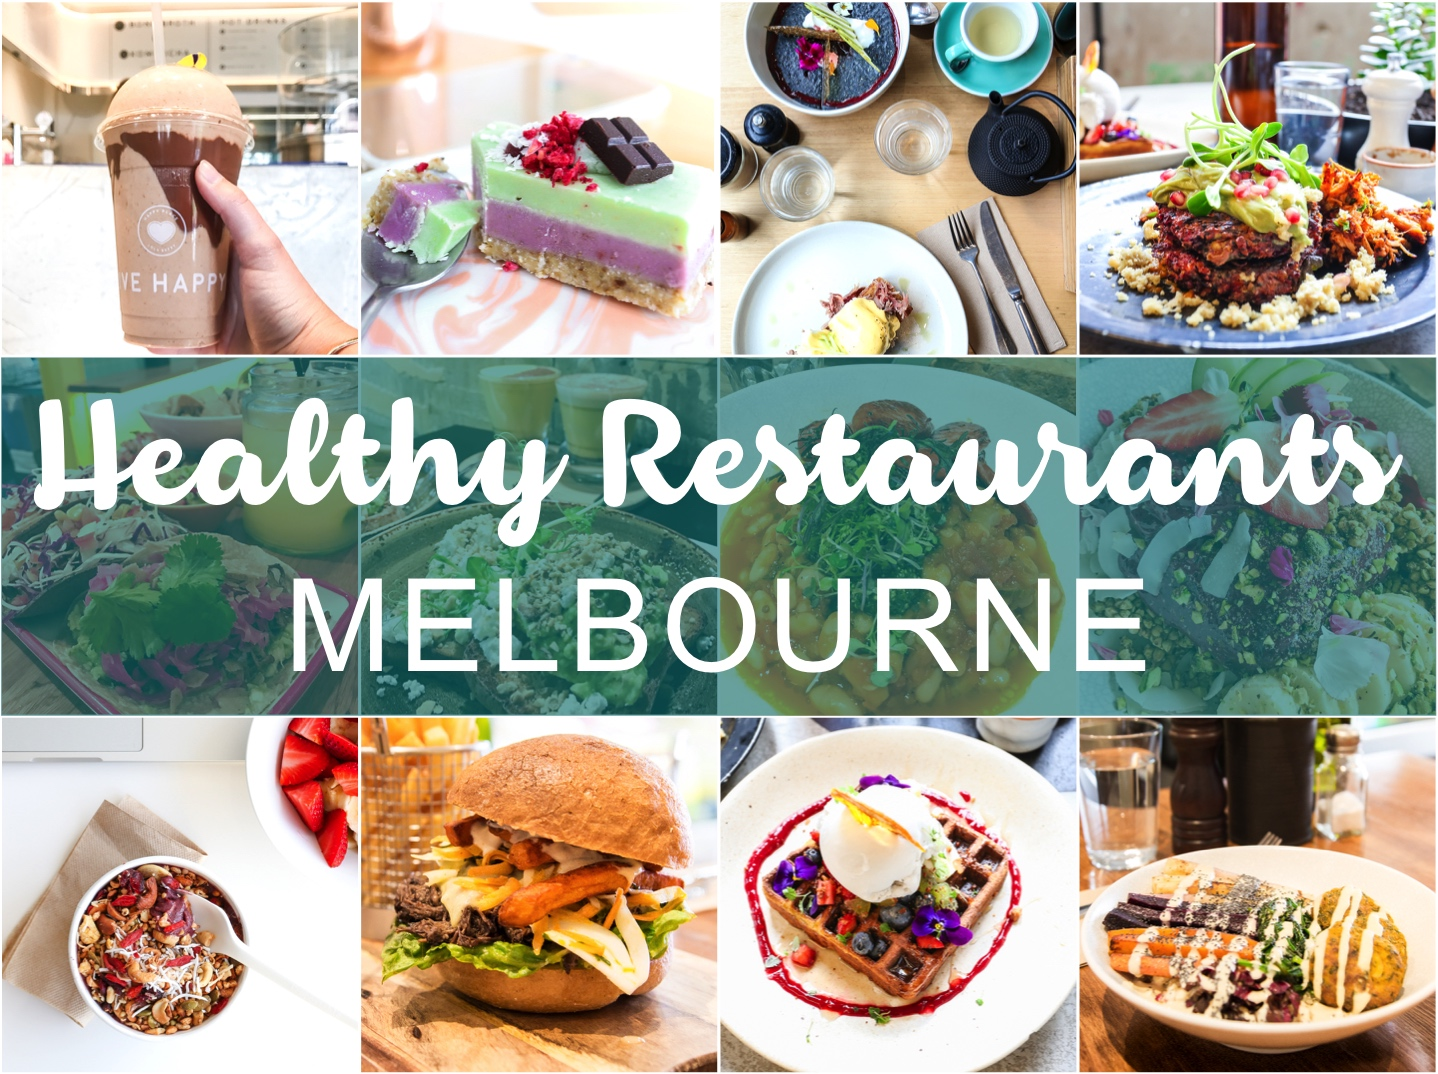 Healthy Restaurants Melbourne